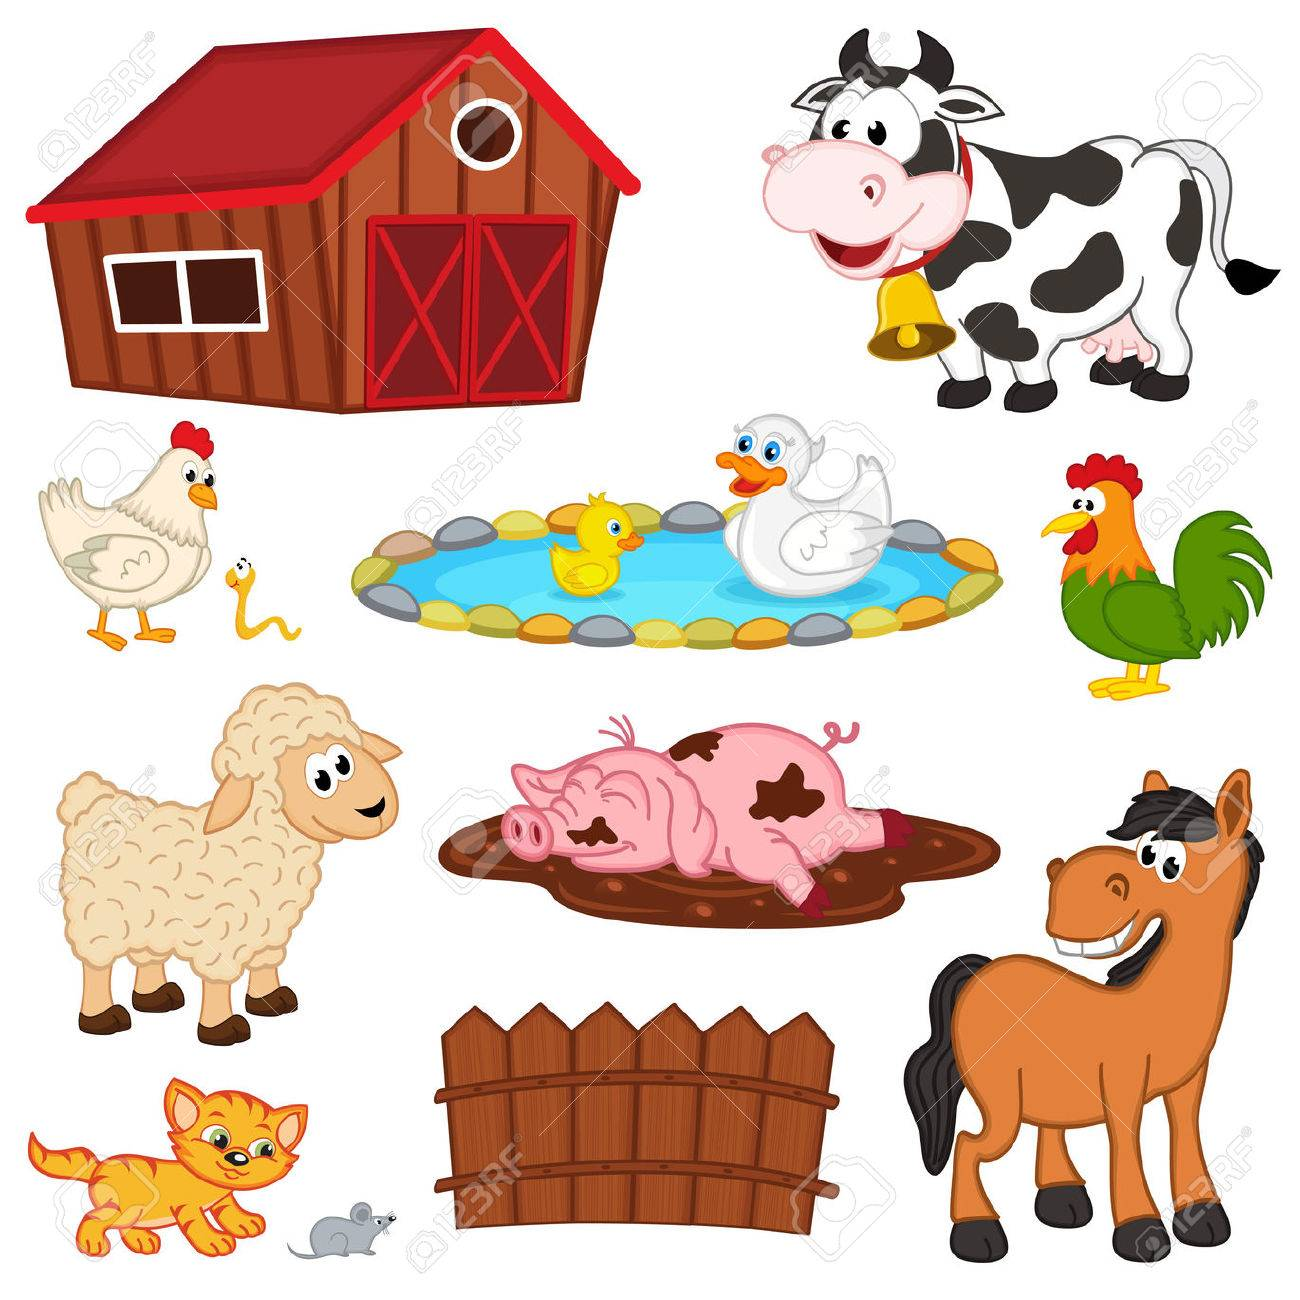 Set Of Isolated Farm Animals - Vector Illustration, Royalty Free Cliparts, Vectors, And Stock Illustration. Image 40382872.